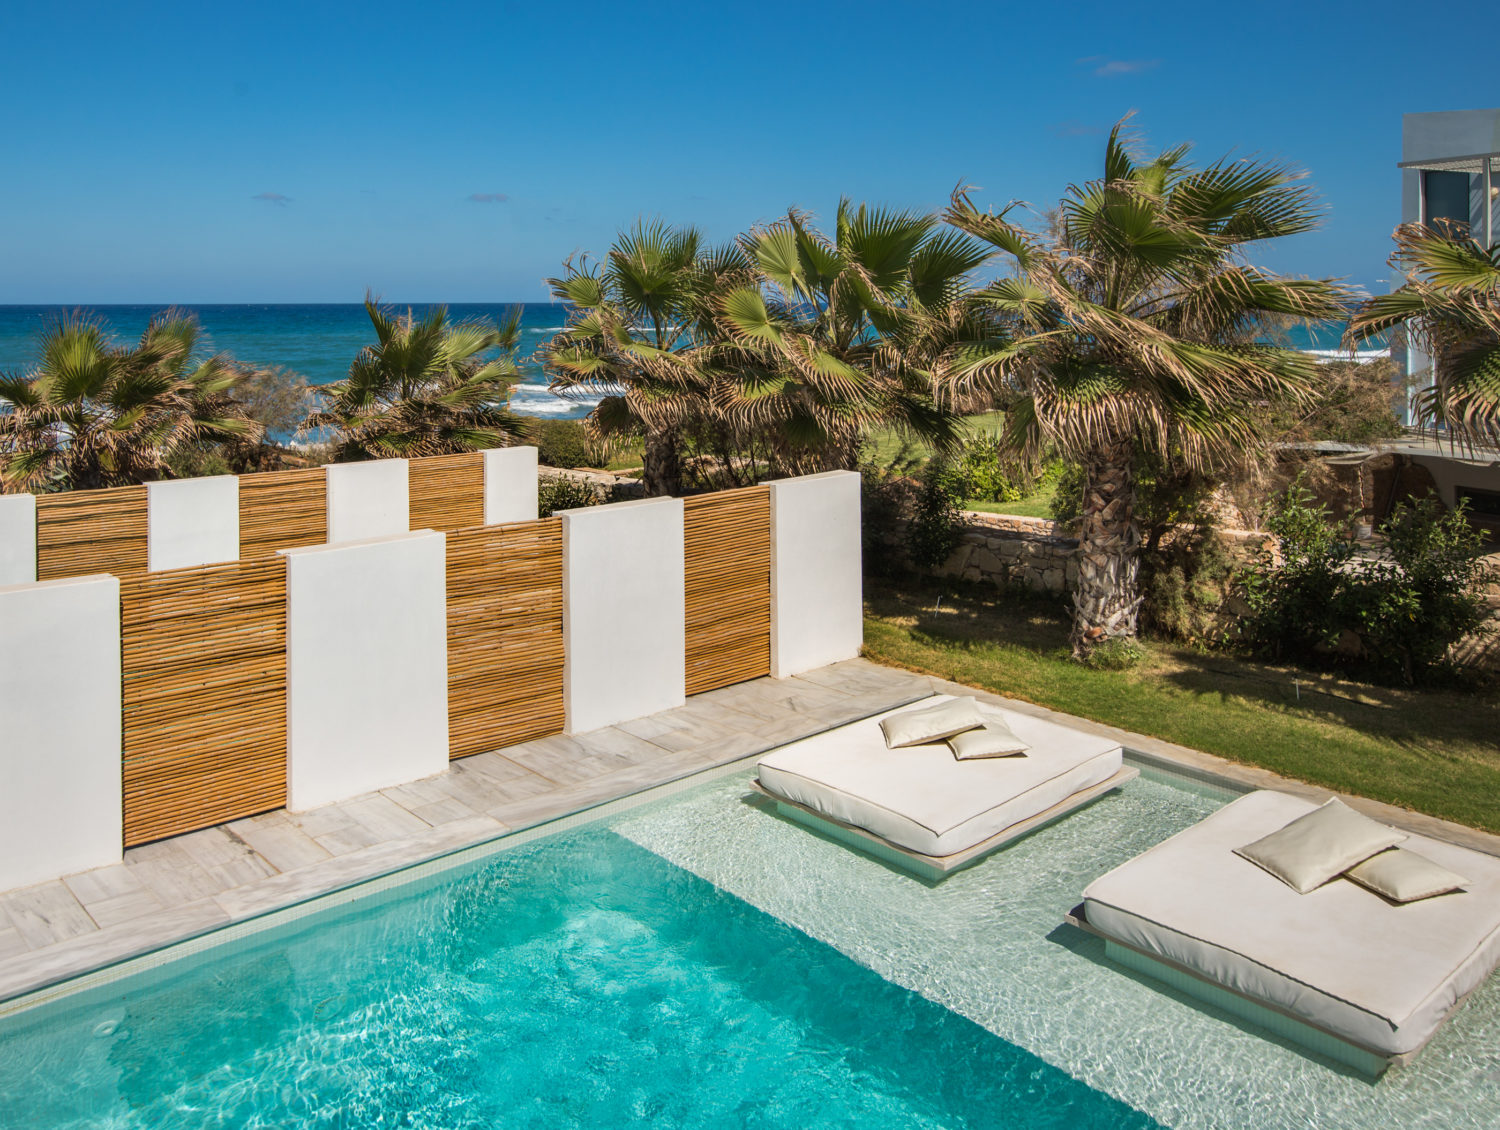 Island Hotel Crete SHARED POOL room